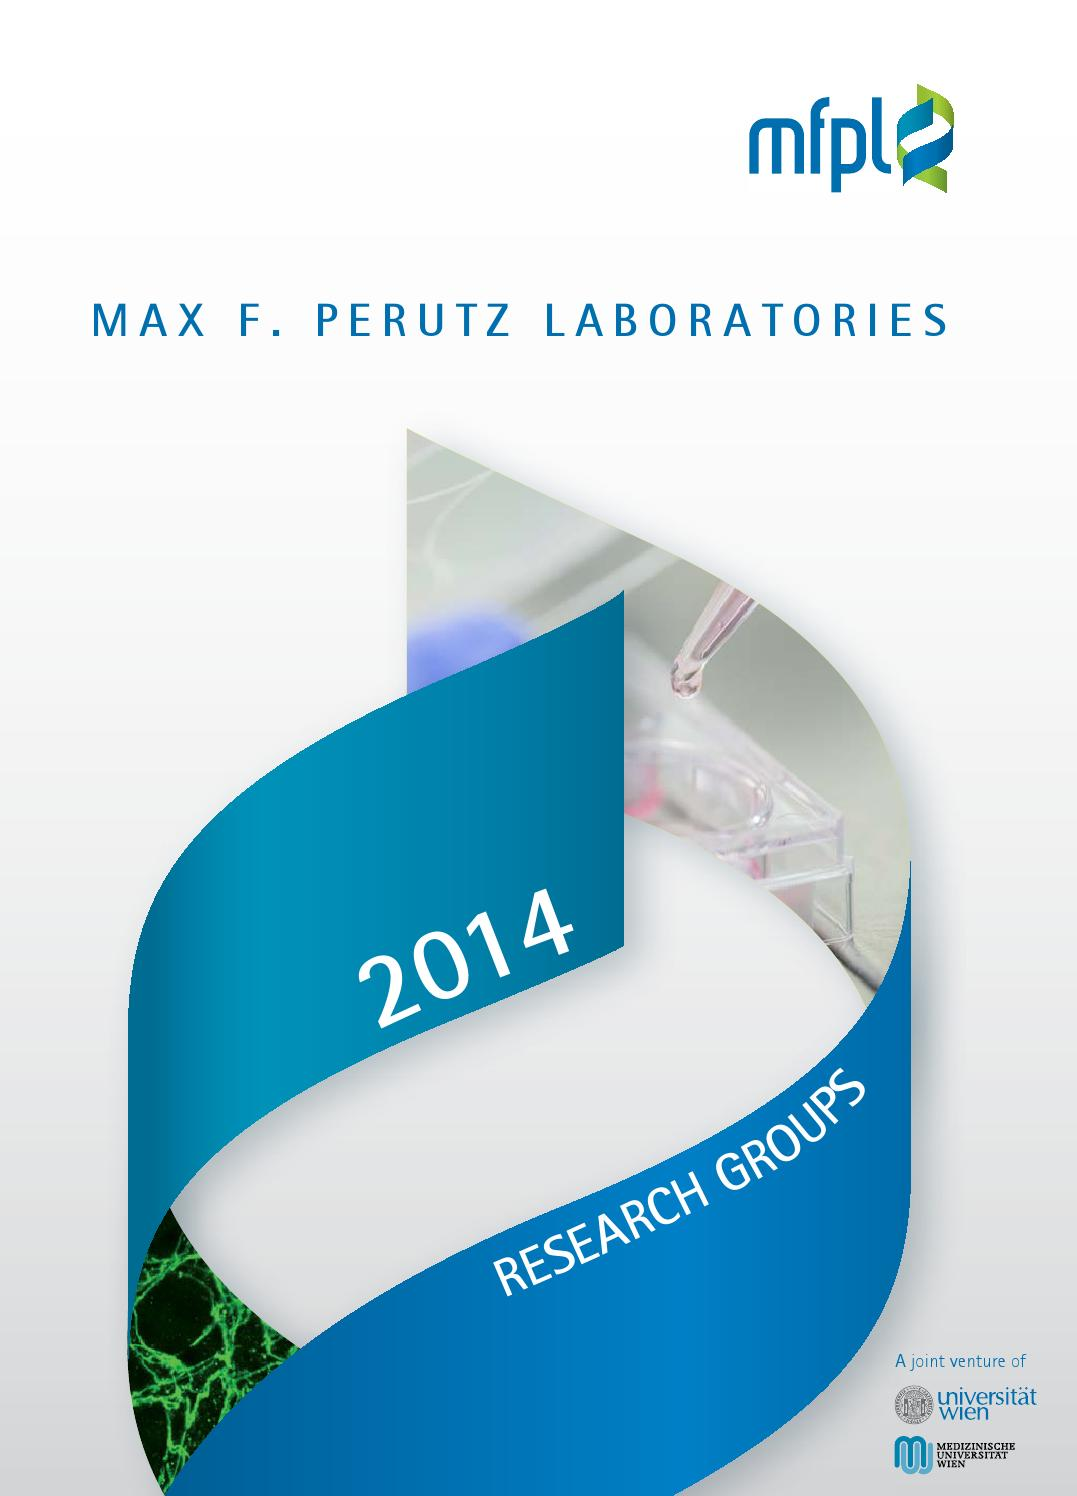 MFPL Research Groups 2014 by Max F  Perutz Laboratories - issuu